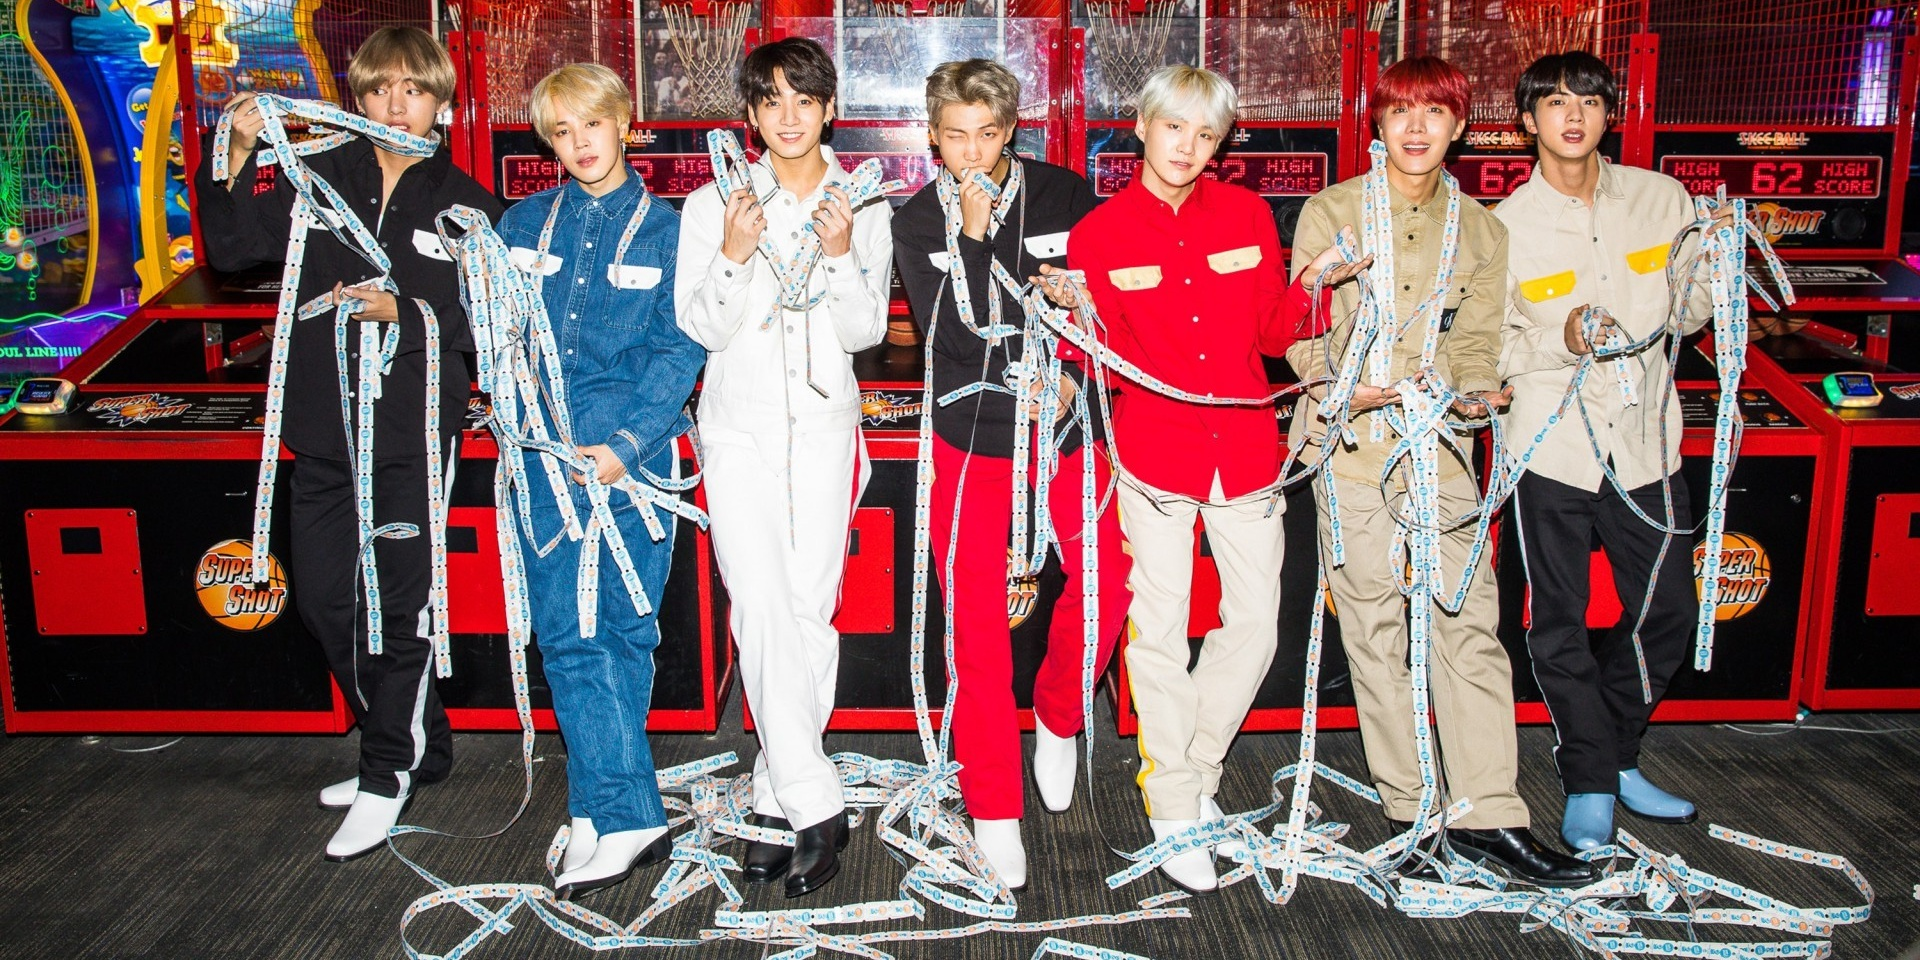 Tickets for BTS' January show in Singapore completely sold out